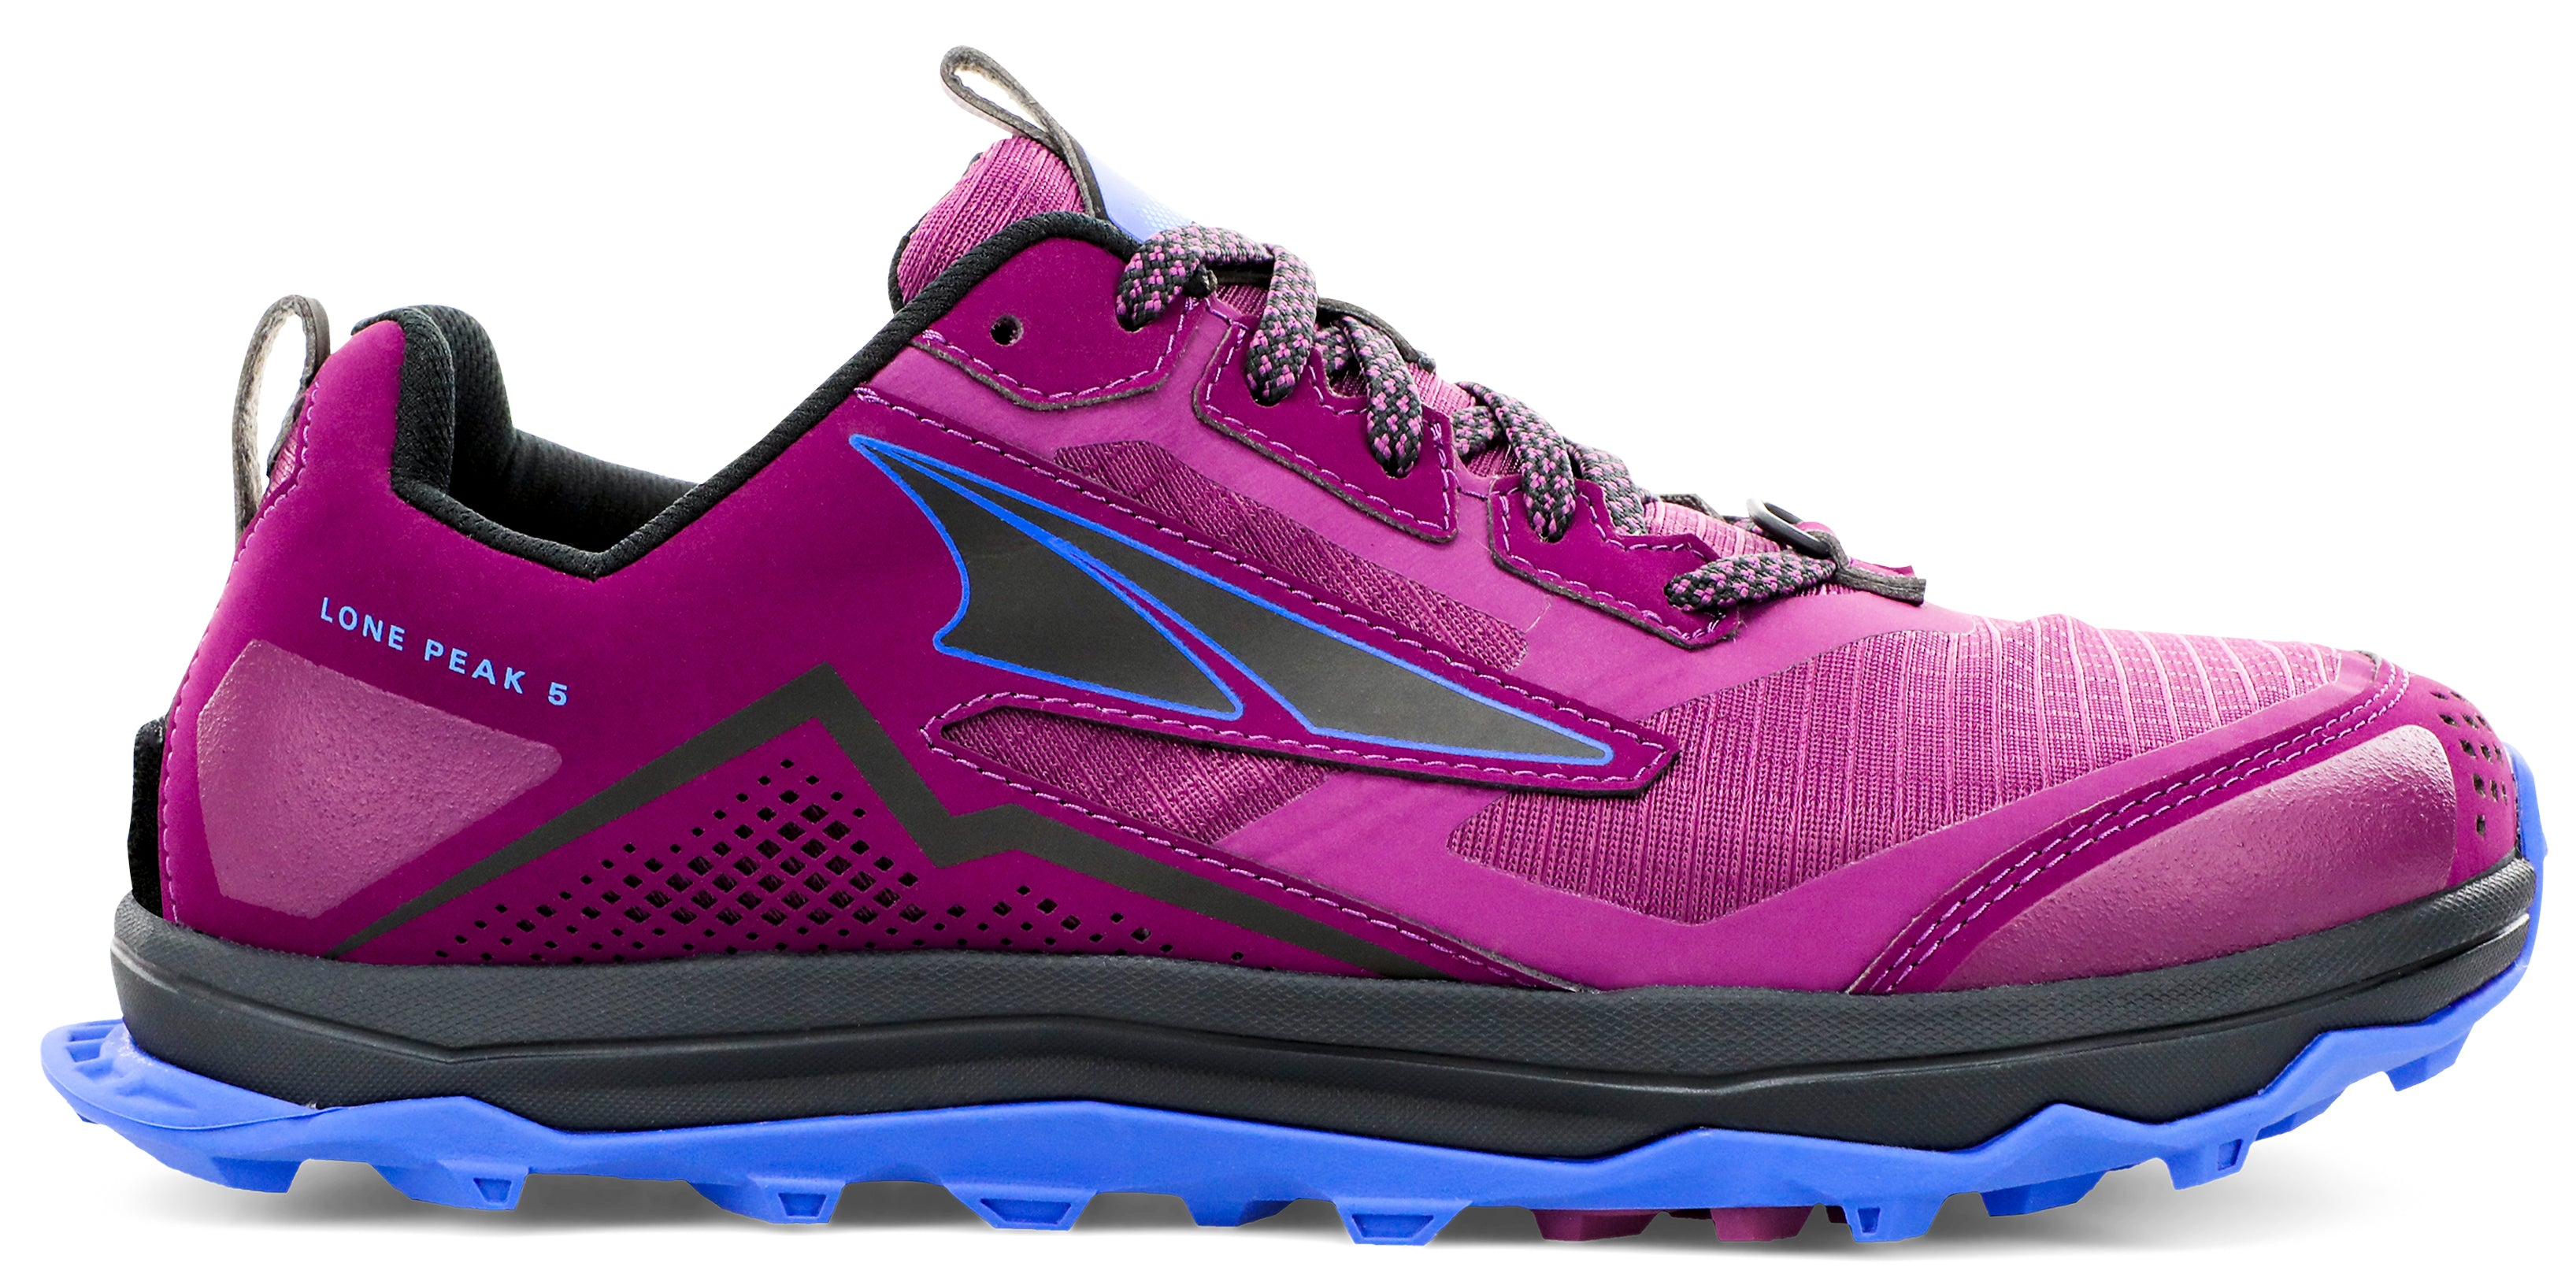 Altra Women's Lone Peak 5 Trail Running Shoe in Plum from the side